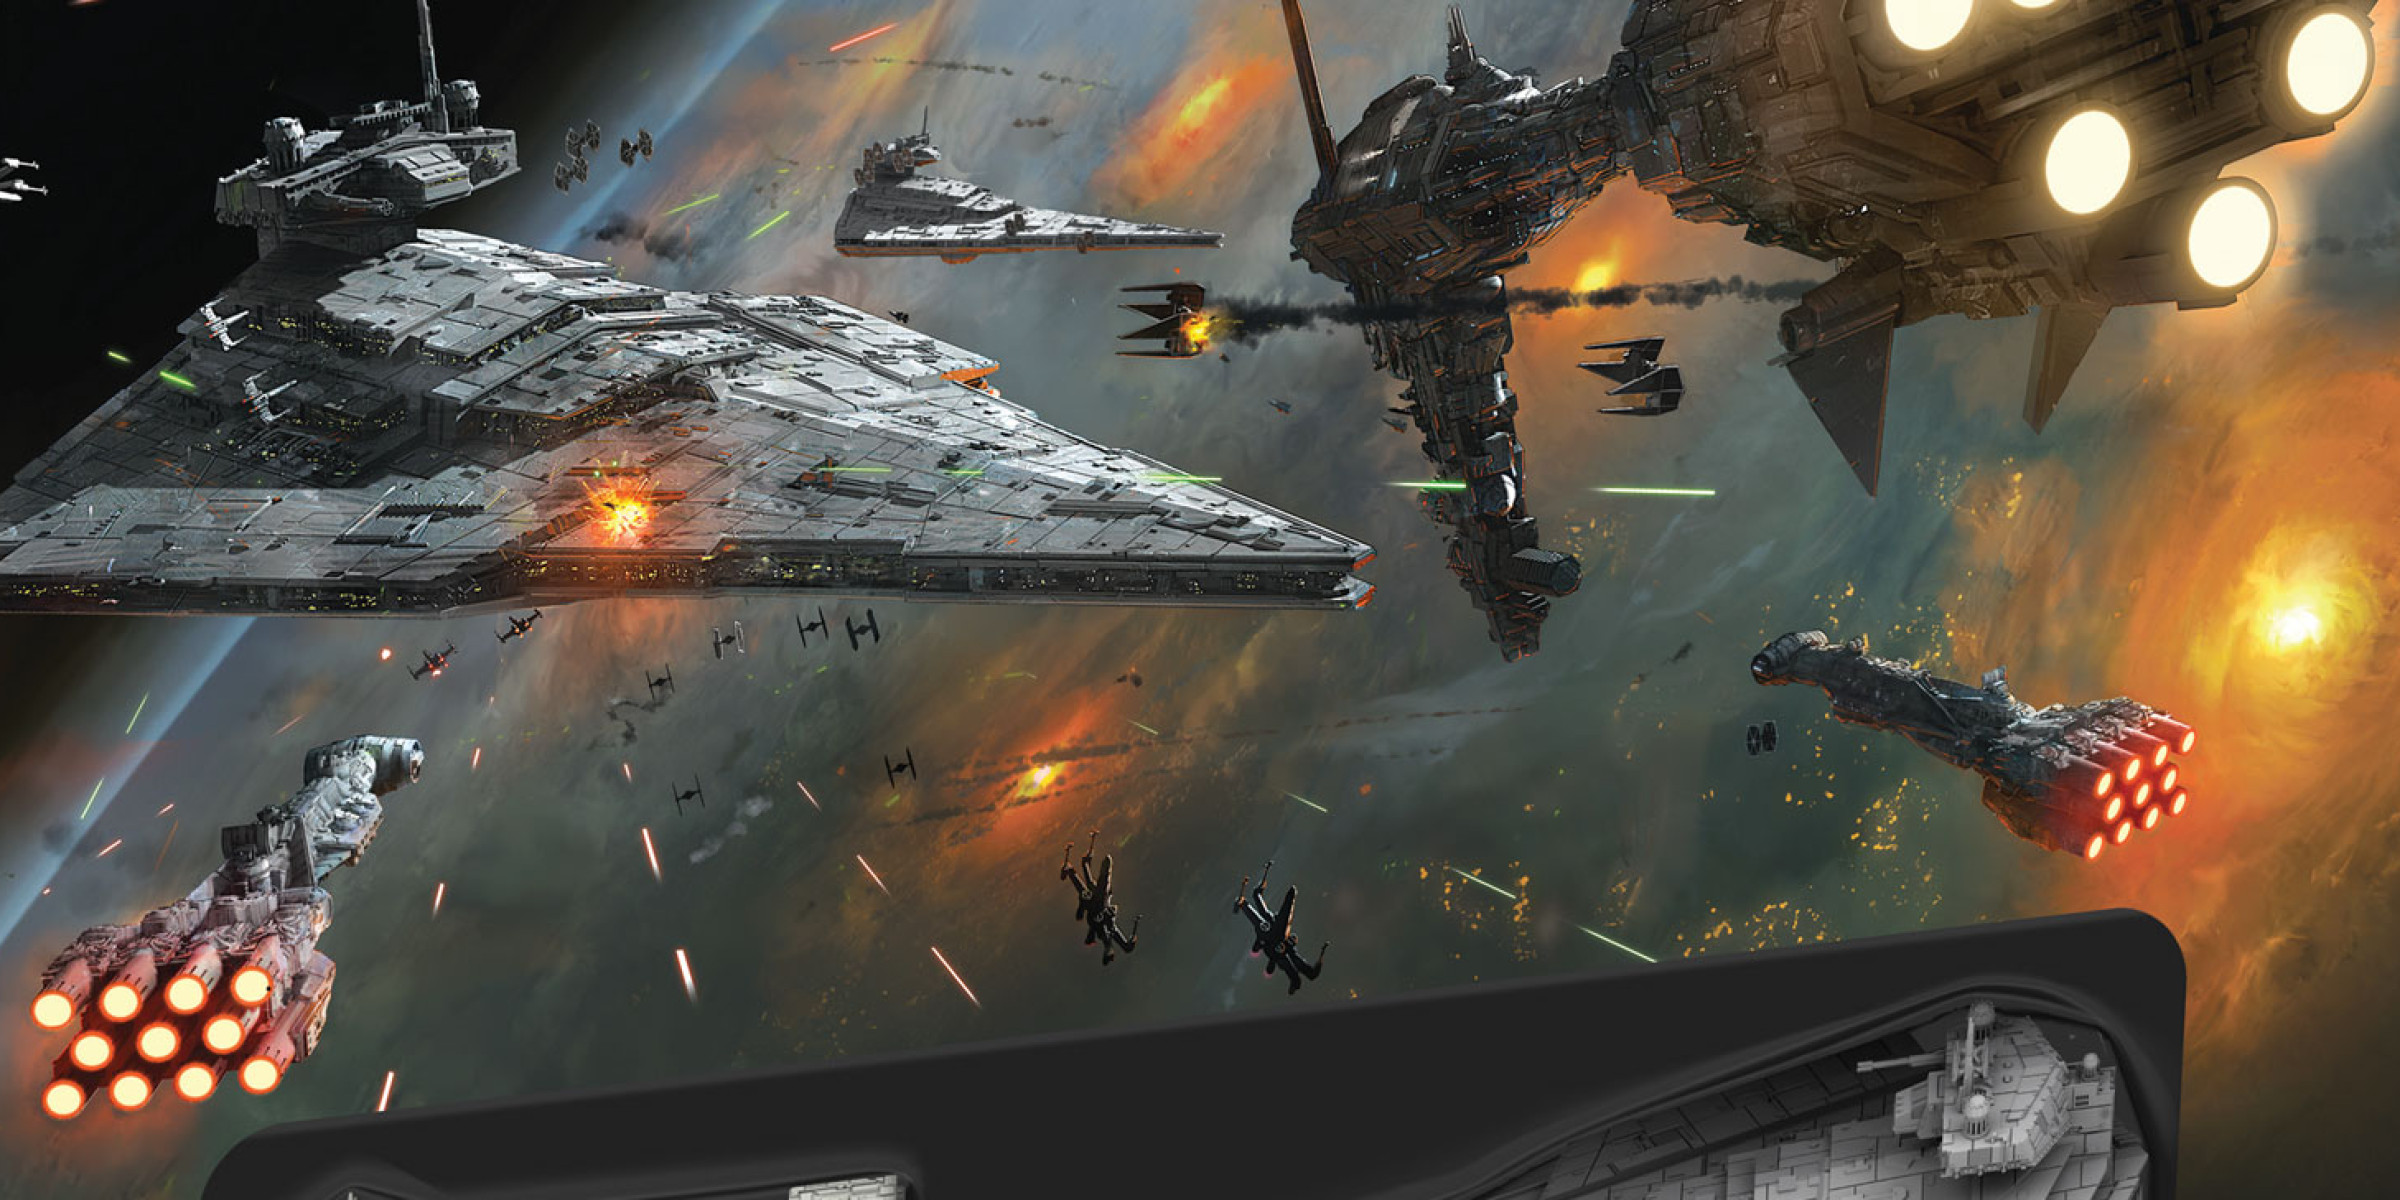 Star Wars Armada by Fantasy Flight Games